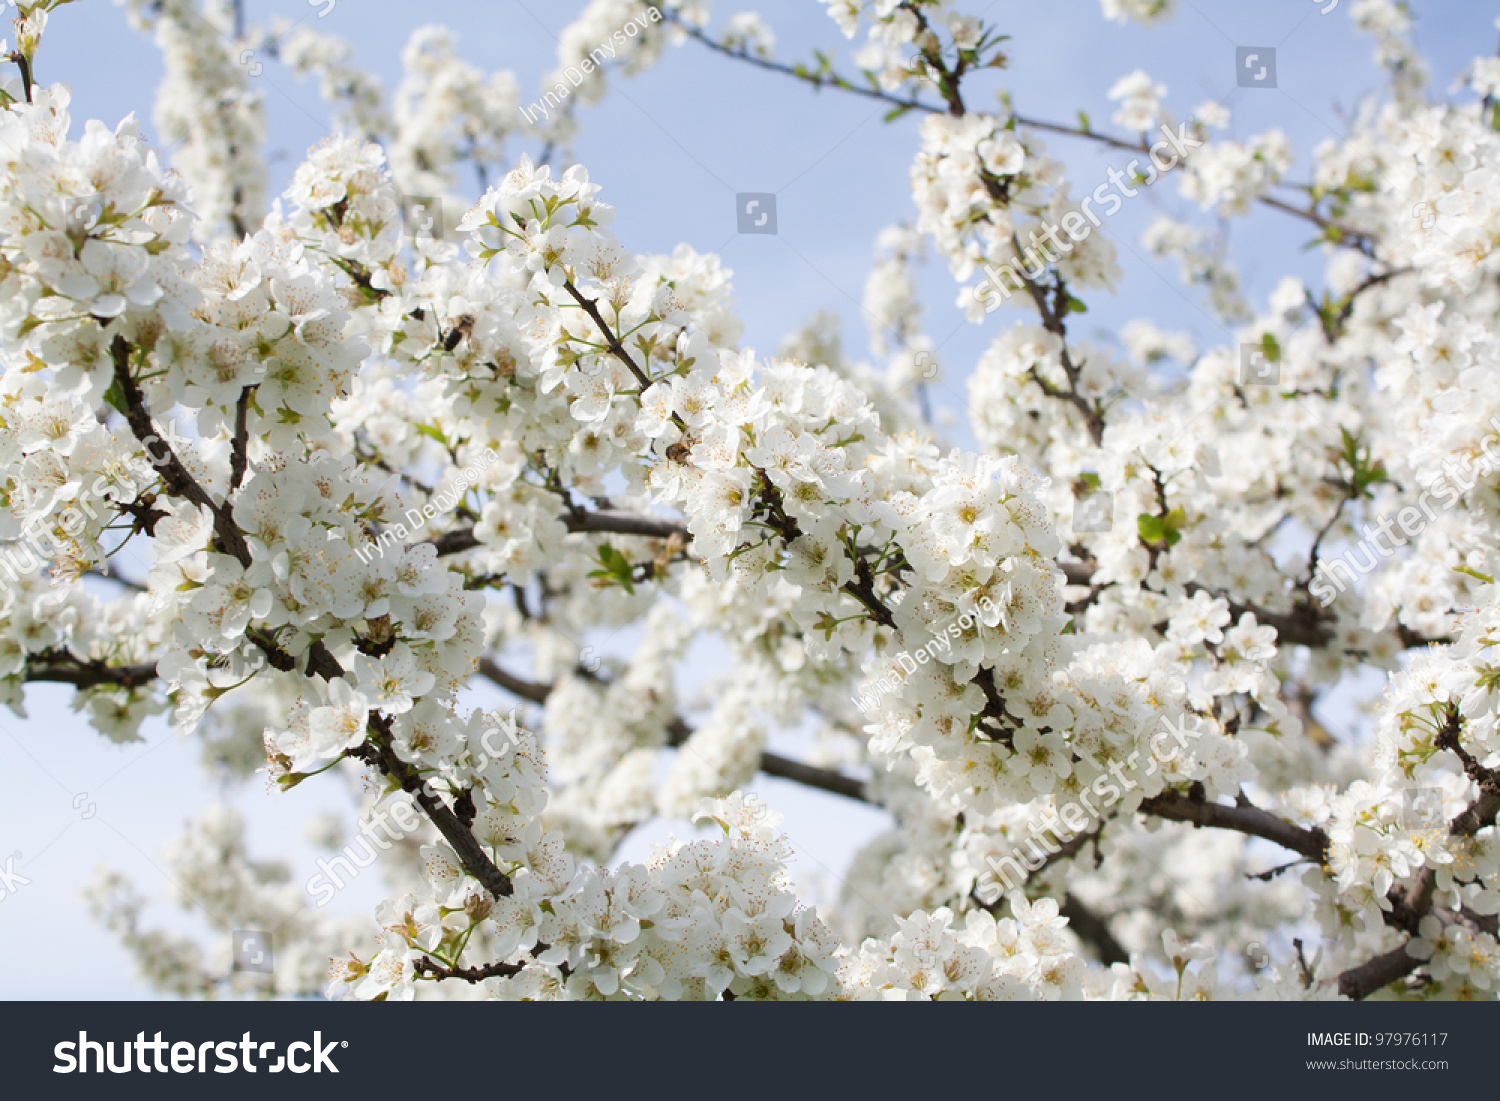 Bunches Plum Blossom White Flowers Against Stock Photo Royalty Free